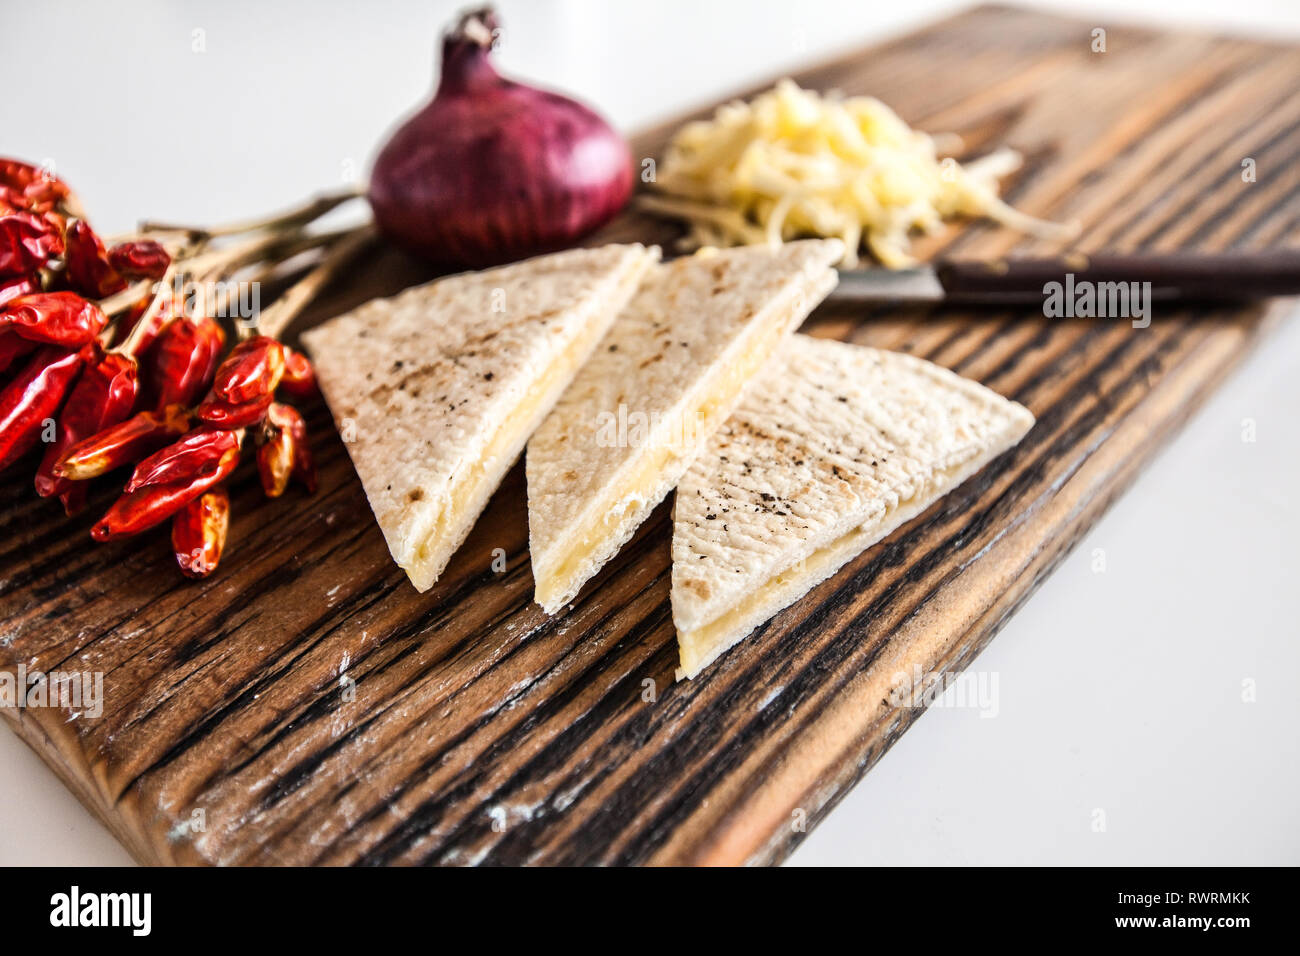 Quesadillas with cheddar and chili on a wood board Stock Photo